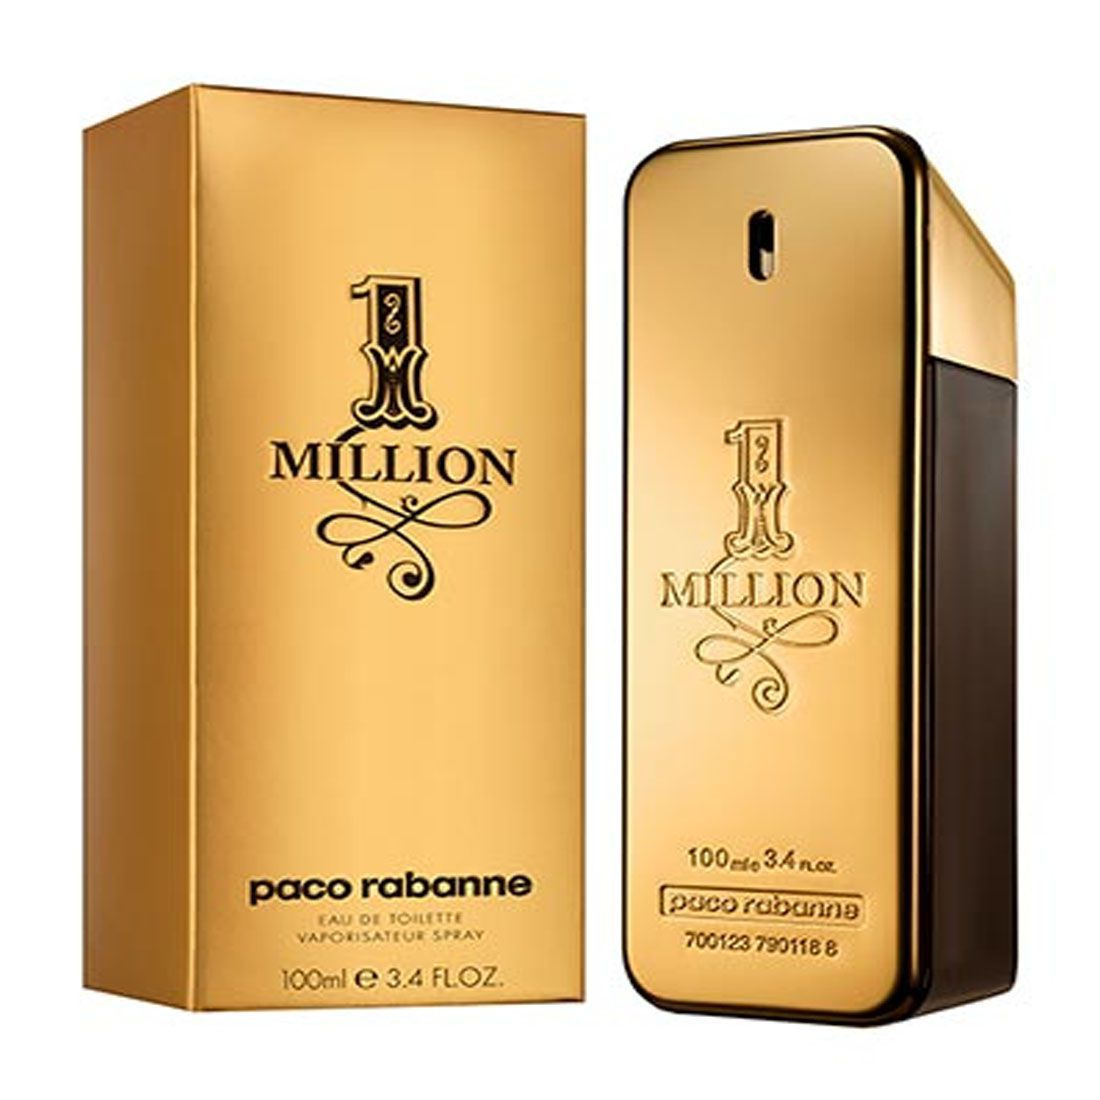 Perfume One Million Paco Rabanne Eau de Toilette 100ml